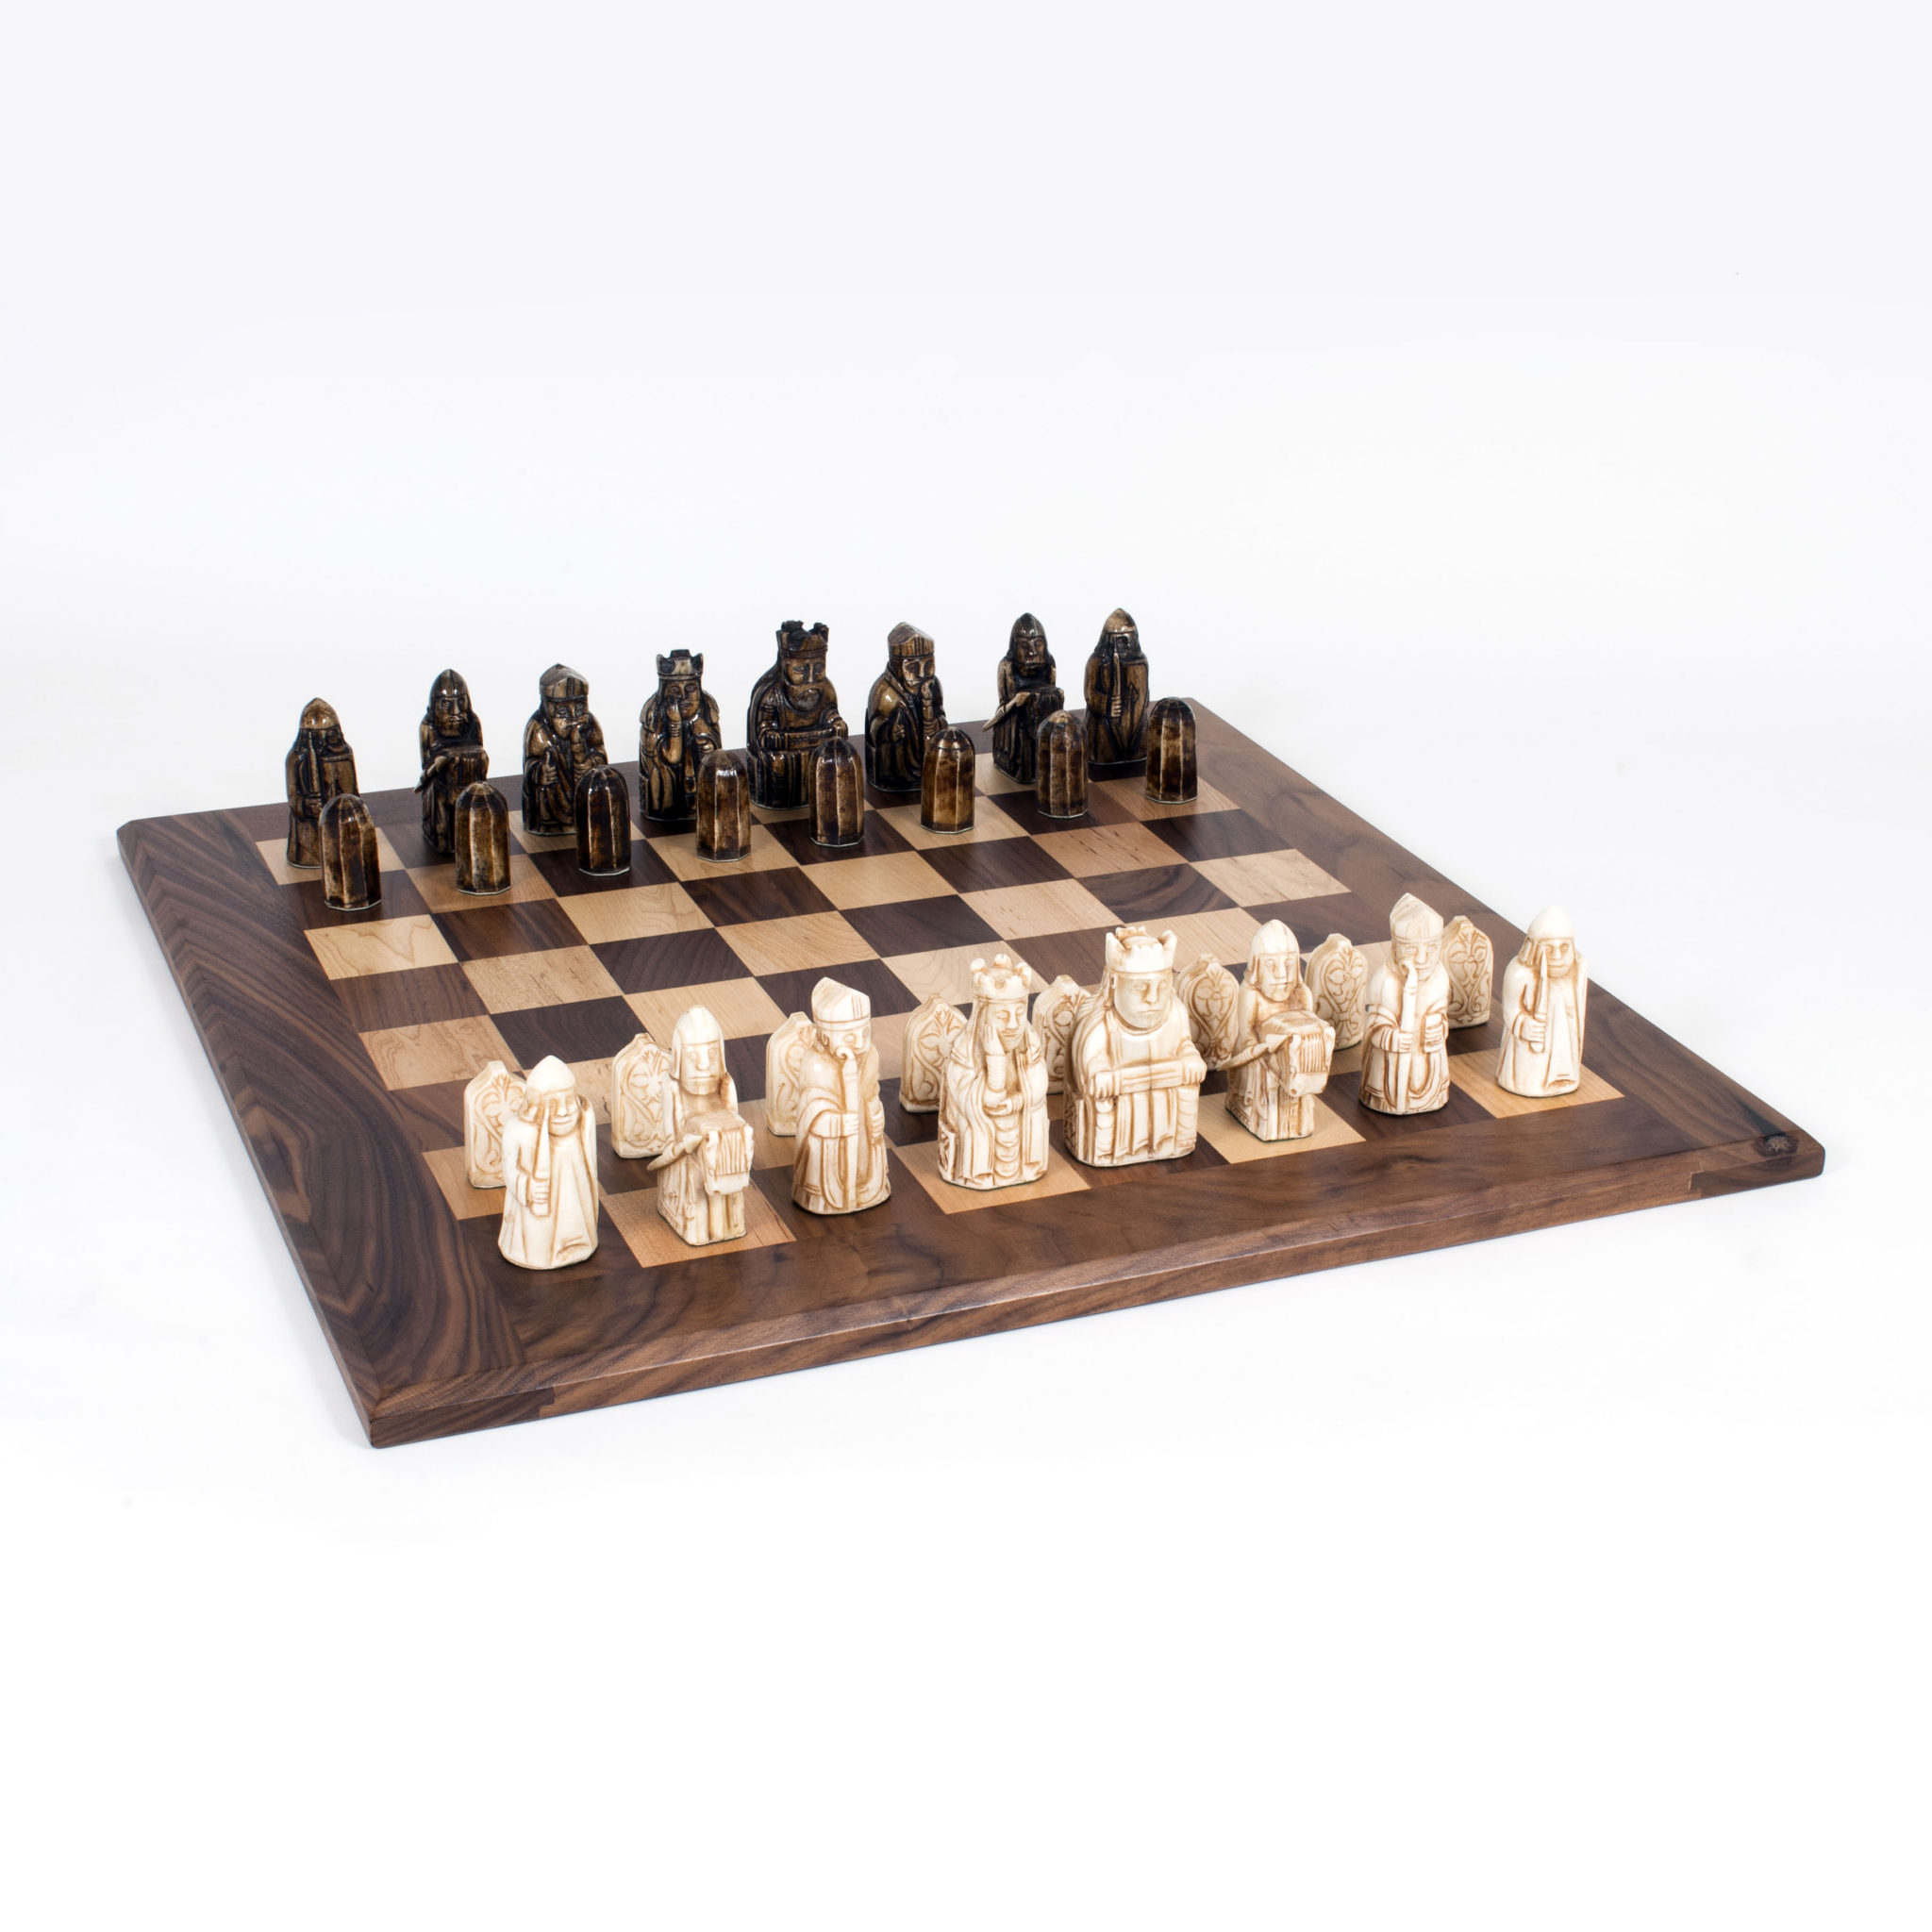 Isle of lewis antiquity chess set 23 inch wood expressions - Lewis chessmen set ...